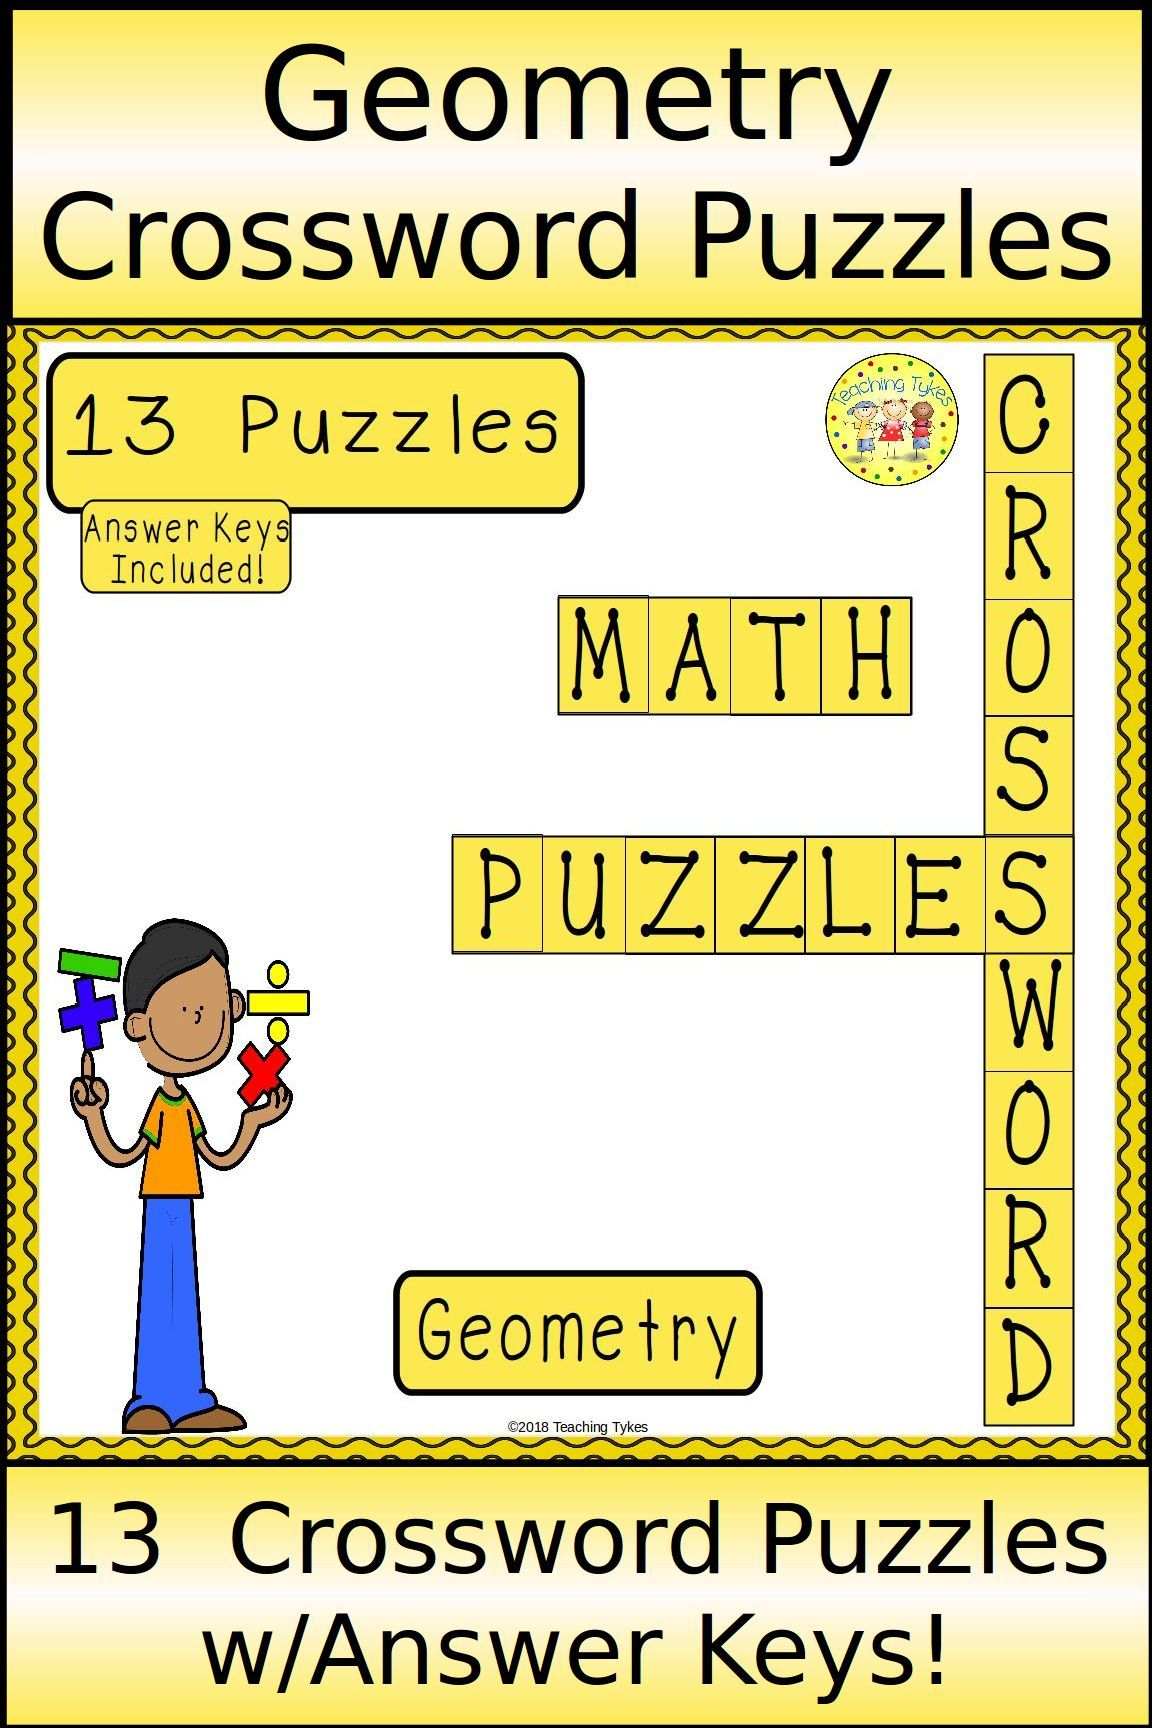 Geometry Crossword Puzzles With Images